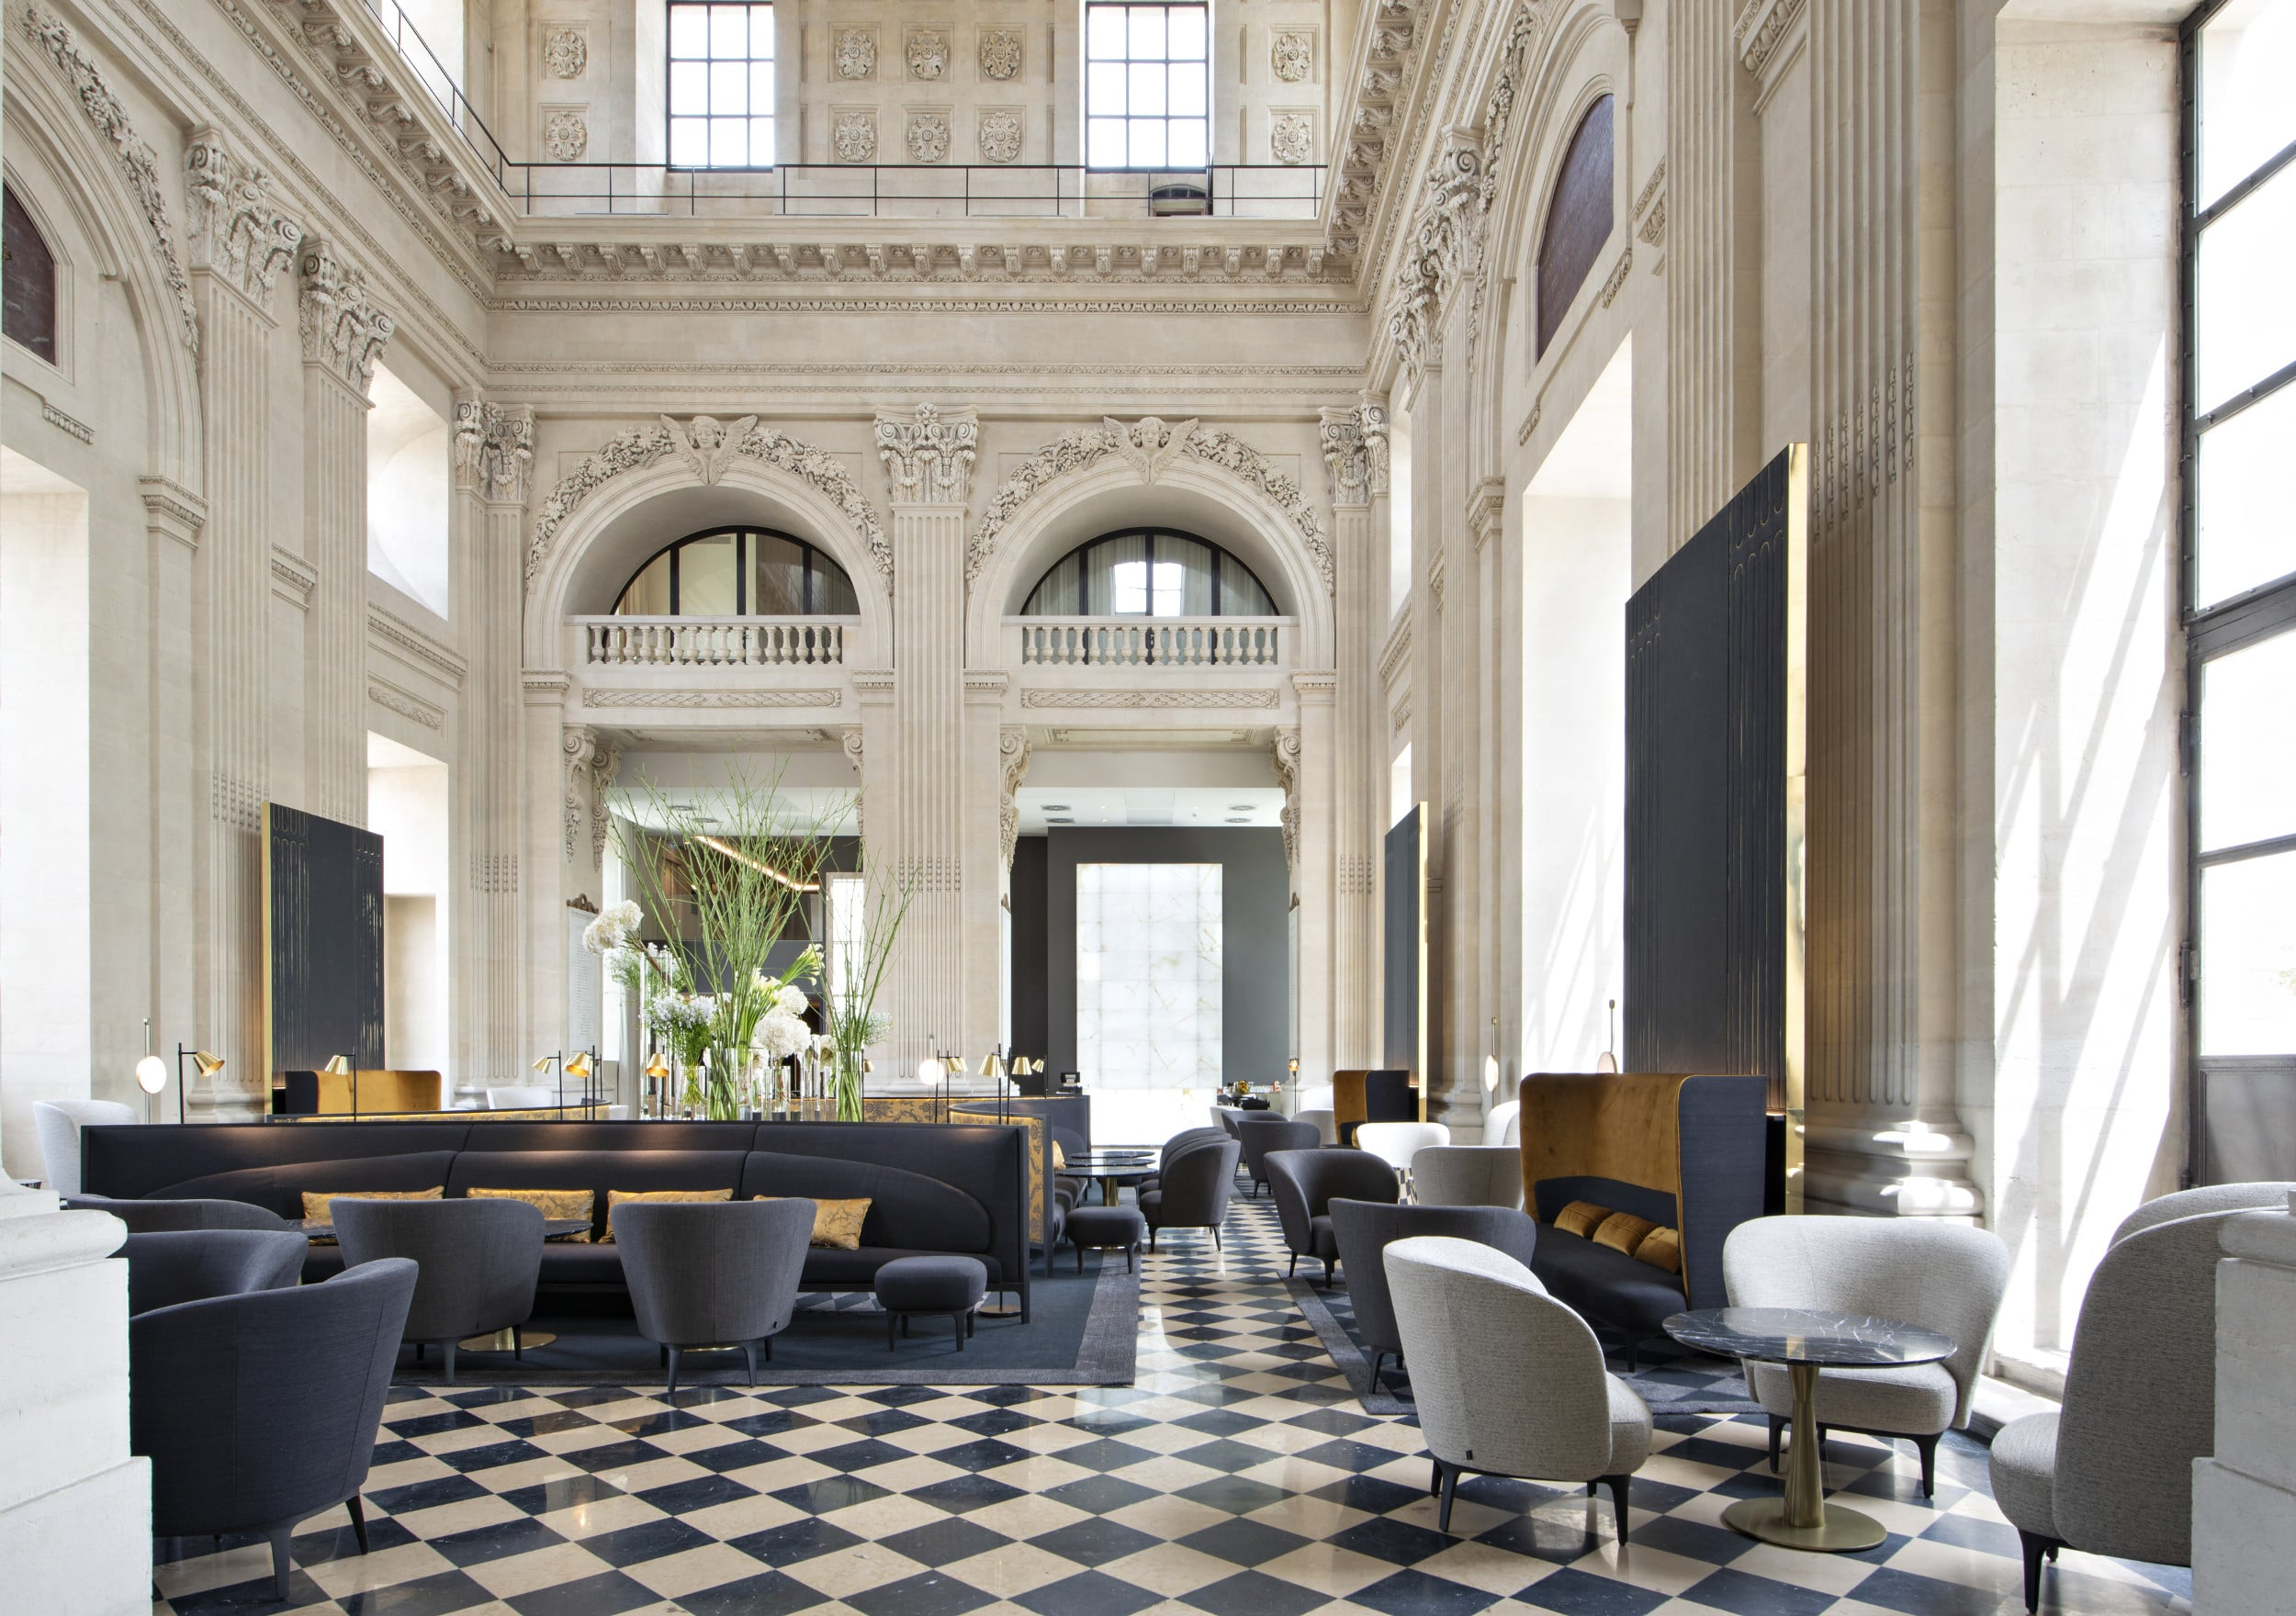 intercontinental-lyon-hotel-dieu-bar-lounge-le-dome